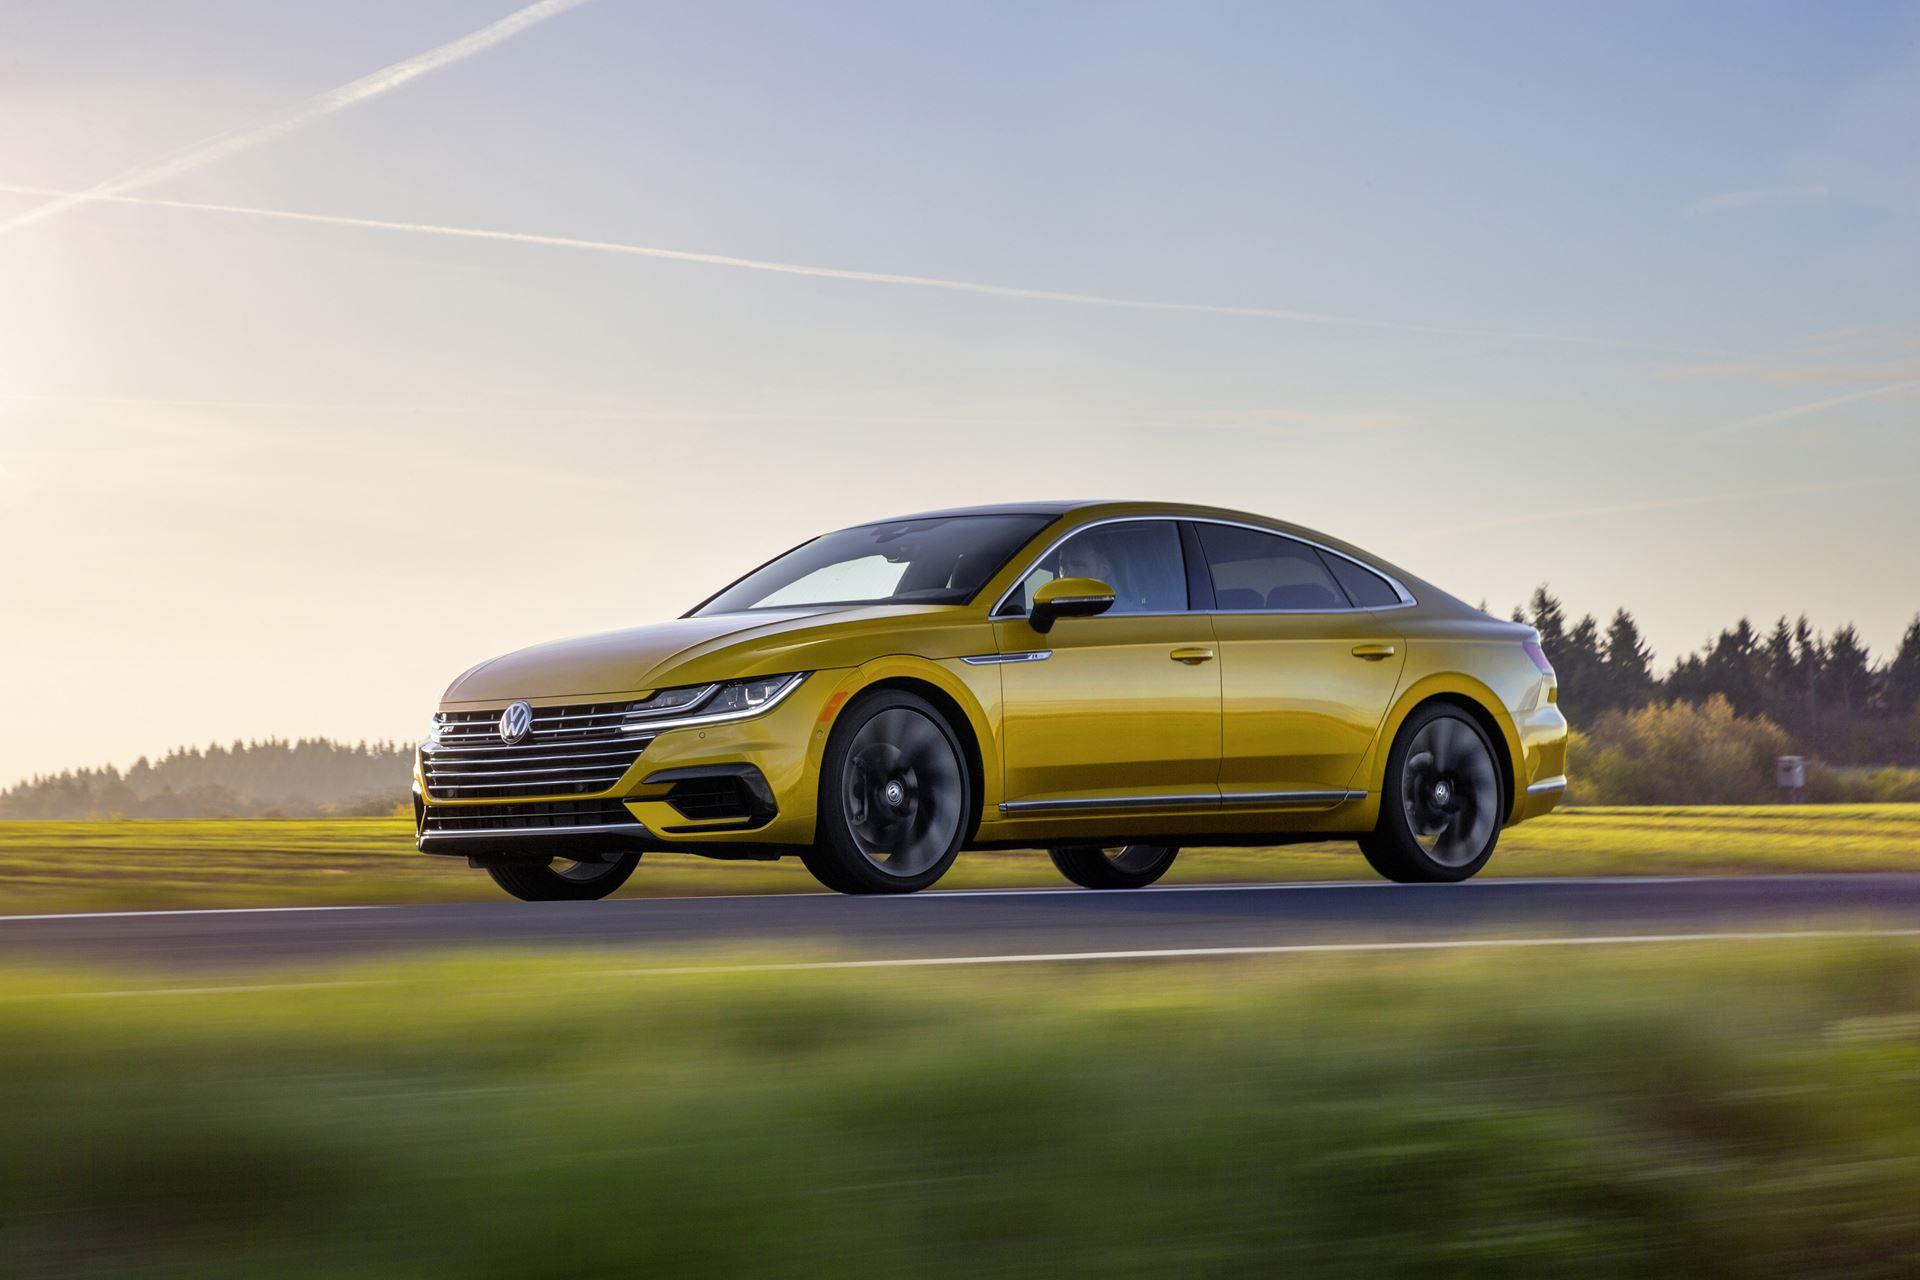 2019 Volkswagen Arteon R Line News and Information 1920x1280